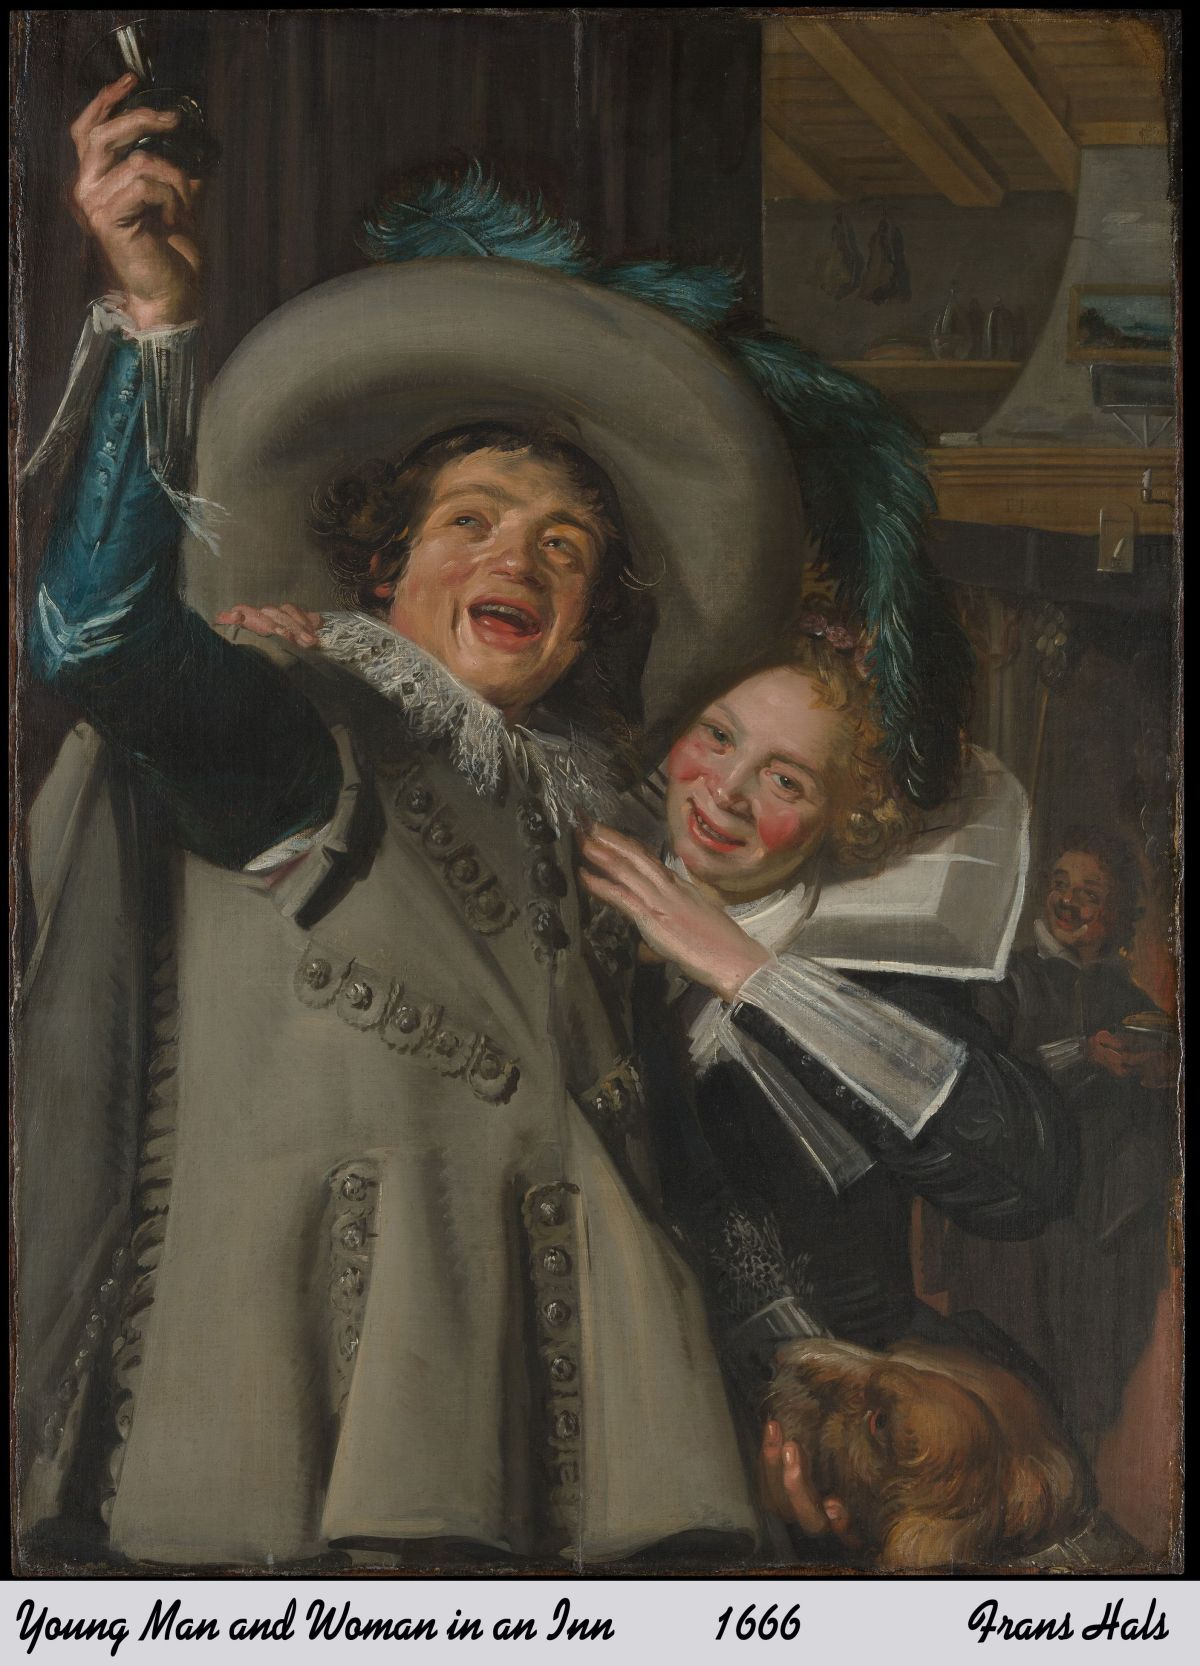 Young Man and Woman in an Inn by Frans Hals copy